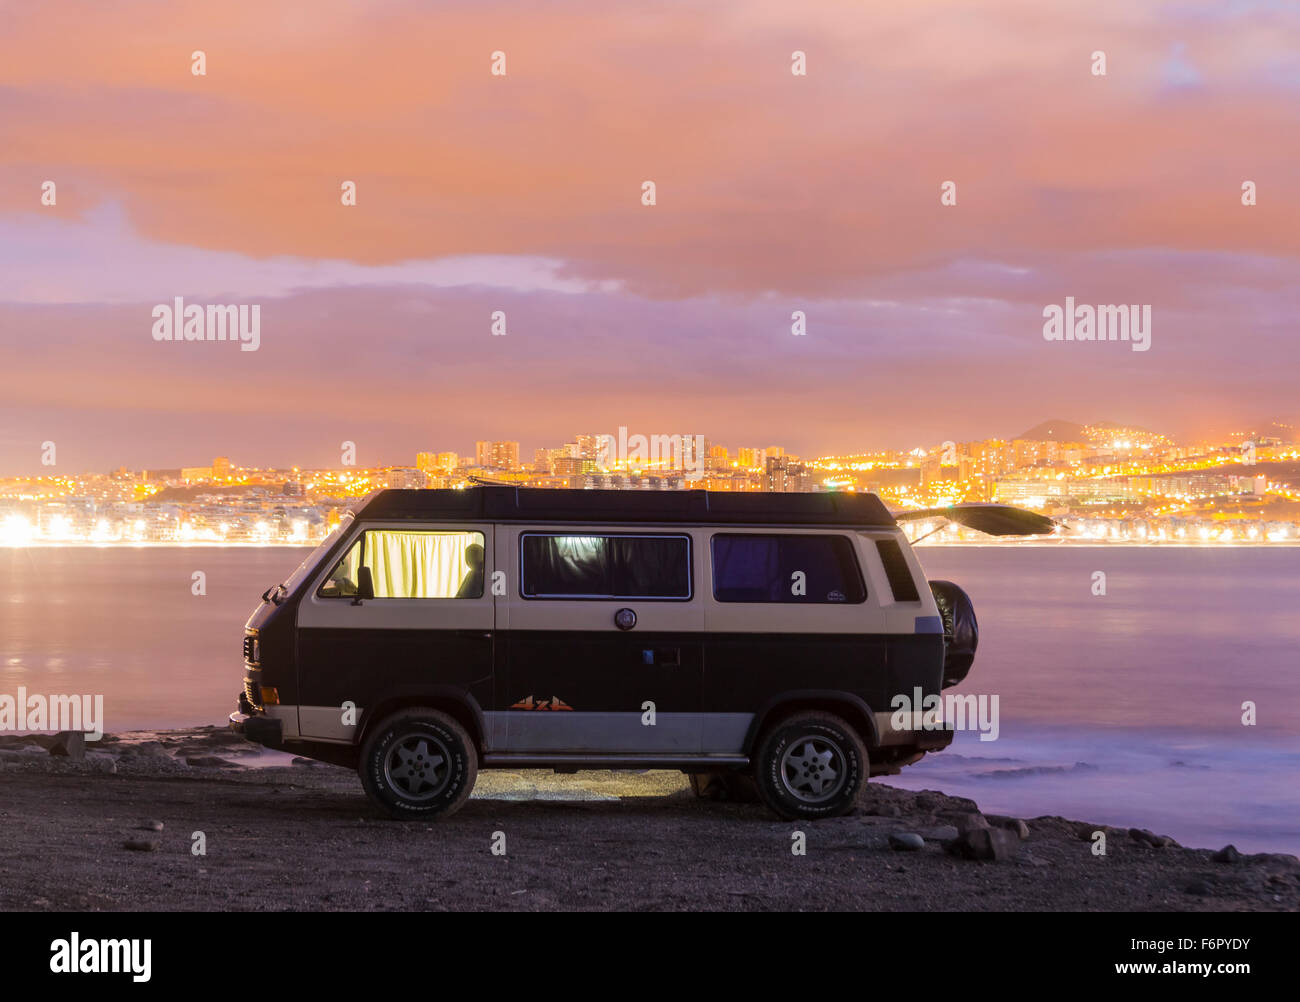 VW camper van parked on beach with city lights in background - Stock Image